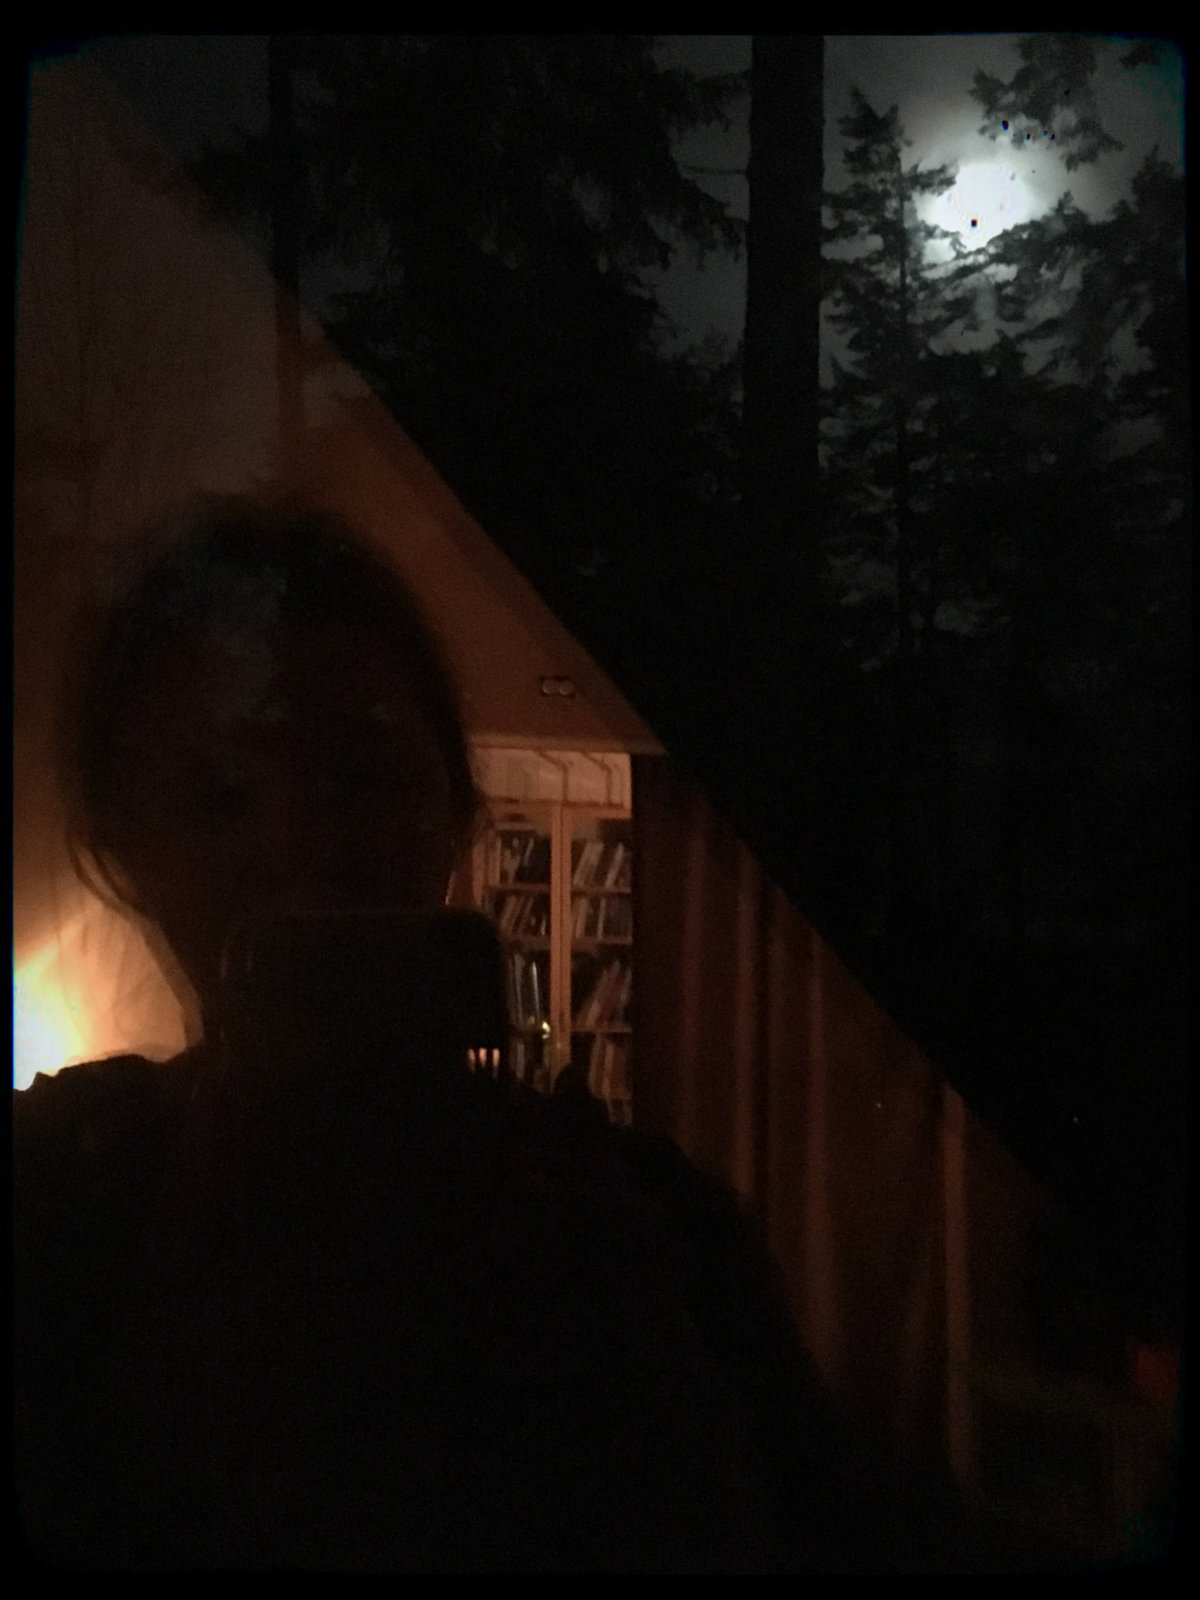 Trixie's reflected silhouette looking at the full moon